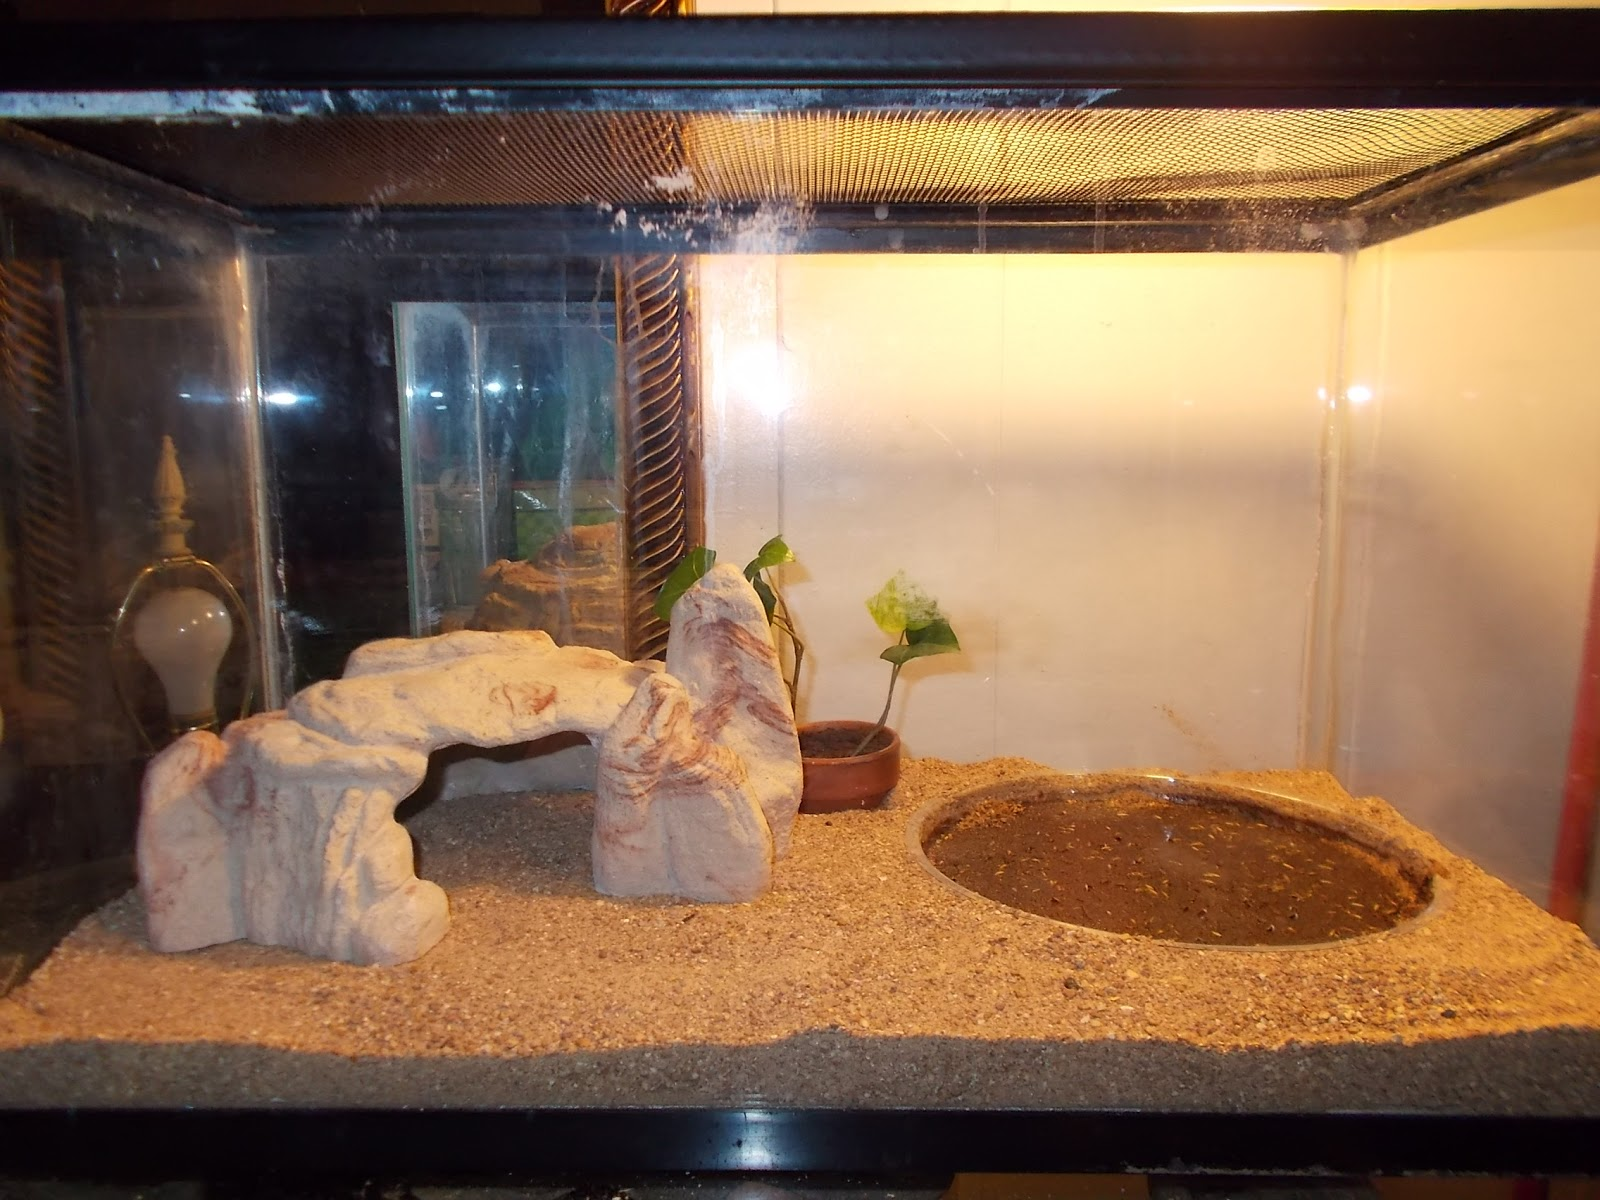 How to Set up a Crabitat How to Set up a Crabitat new picture